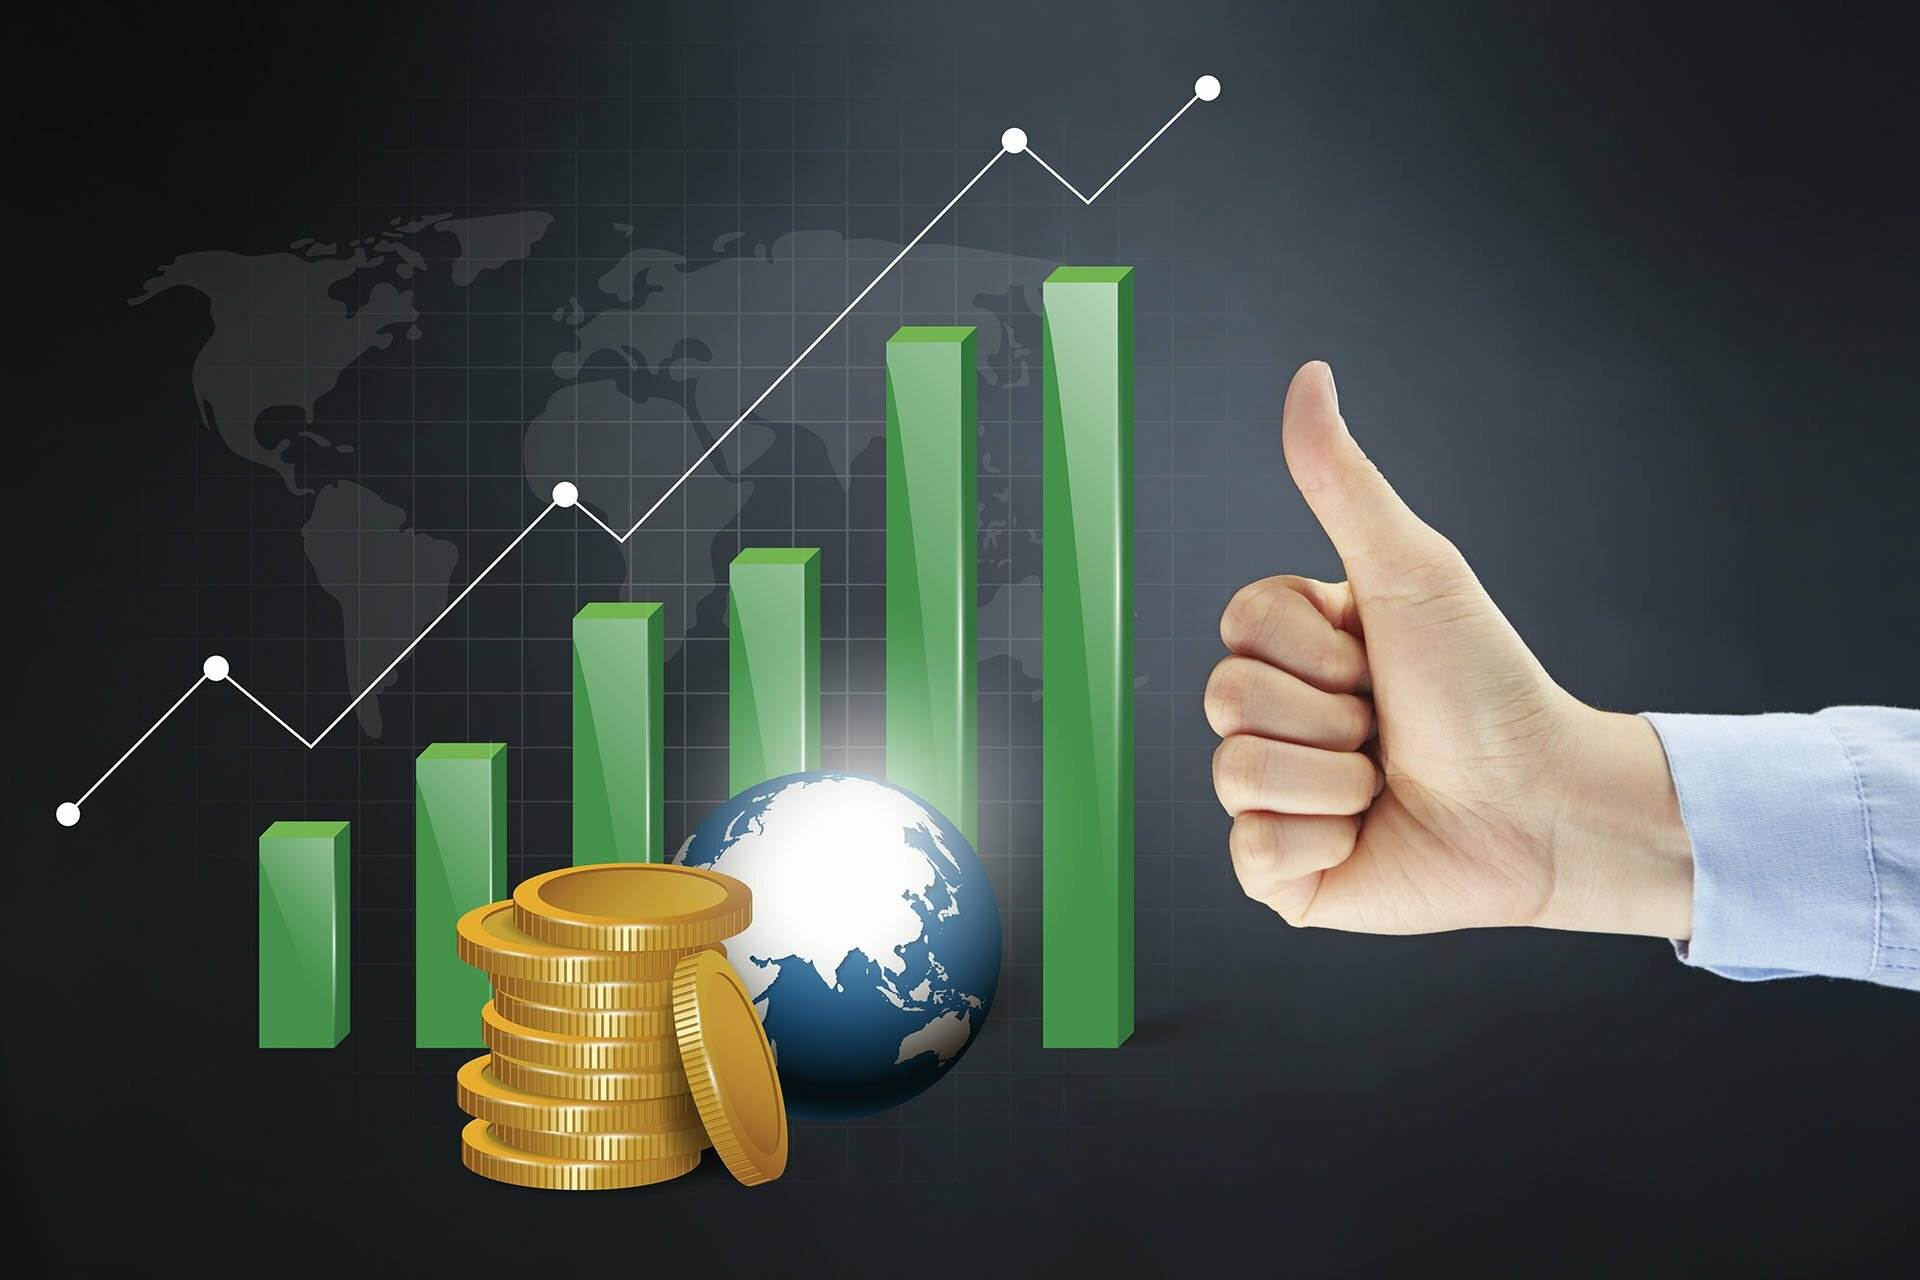 Image of a column graph, coins, money and the globe showing Australia with a man's hand with a thumbs up